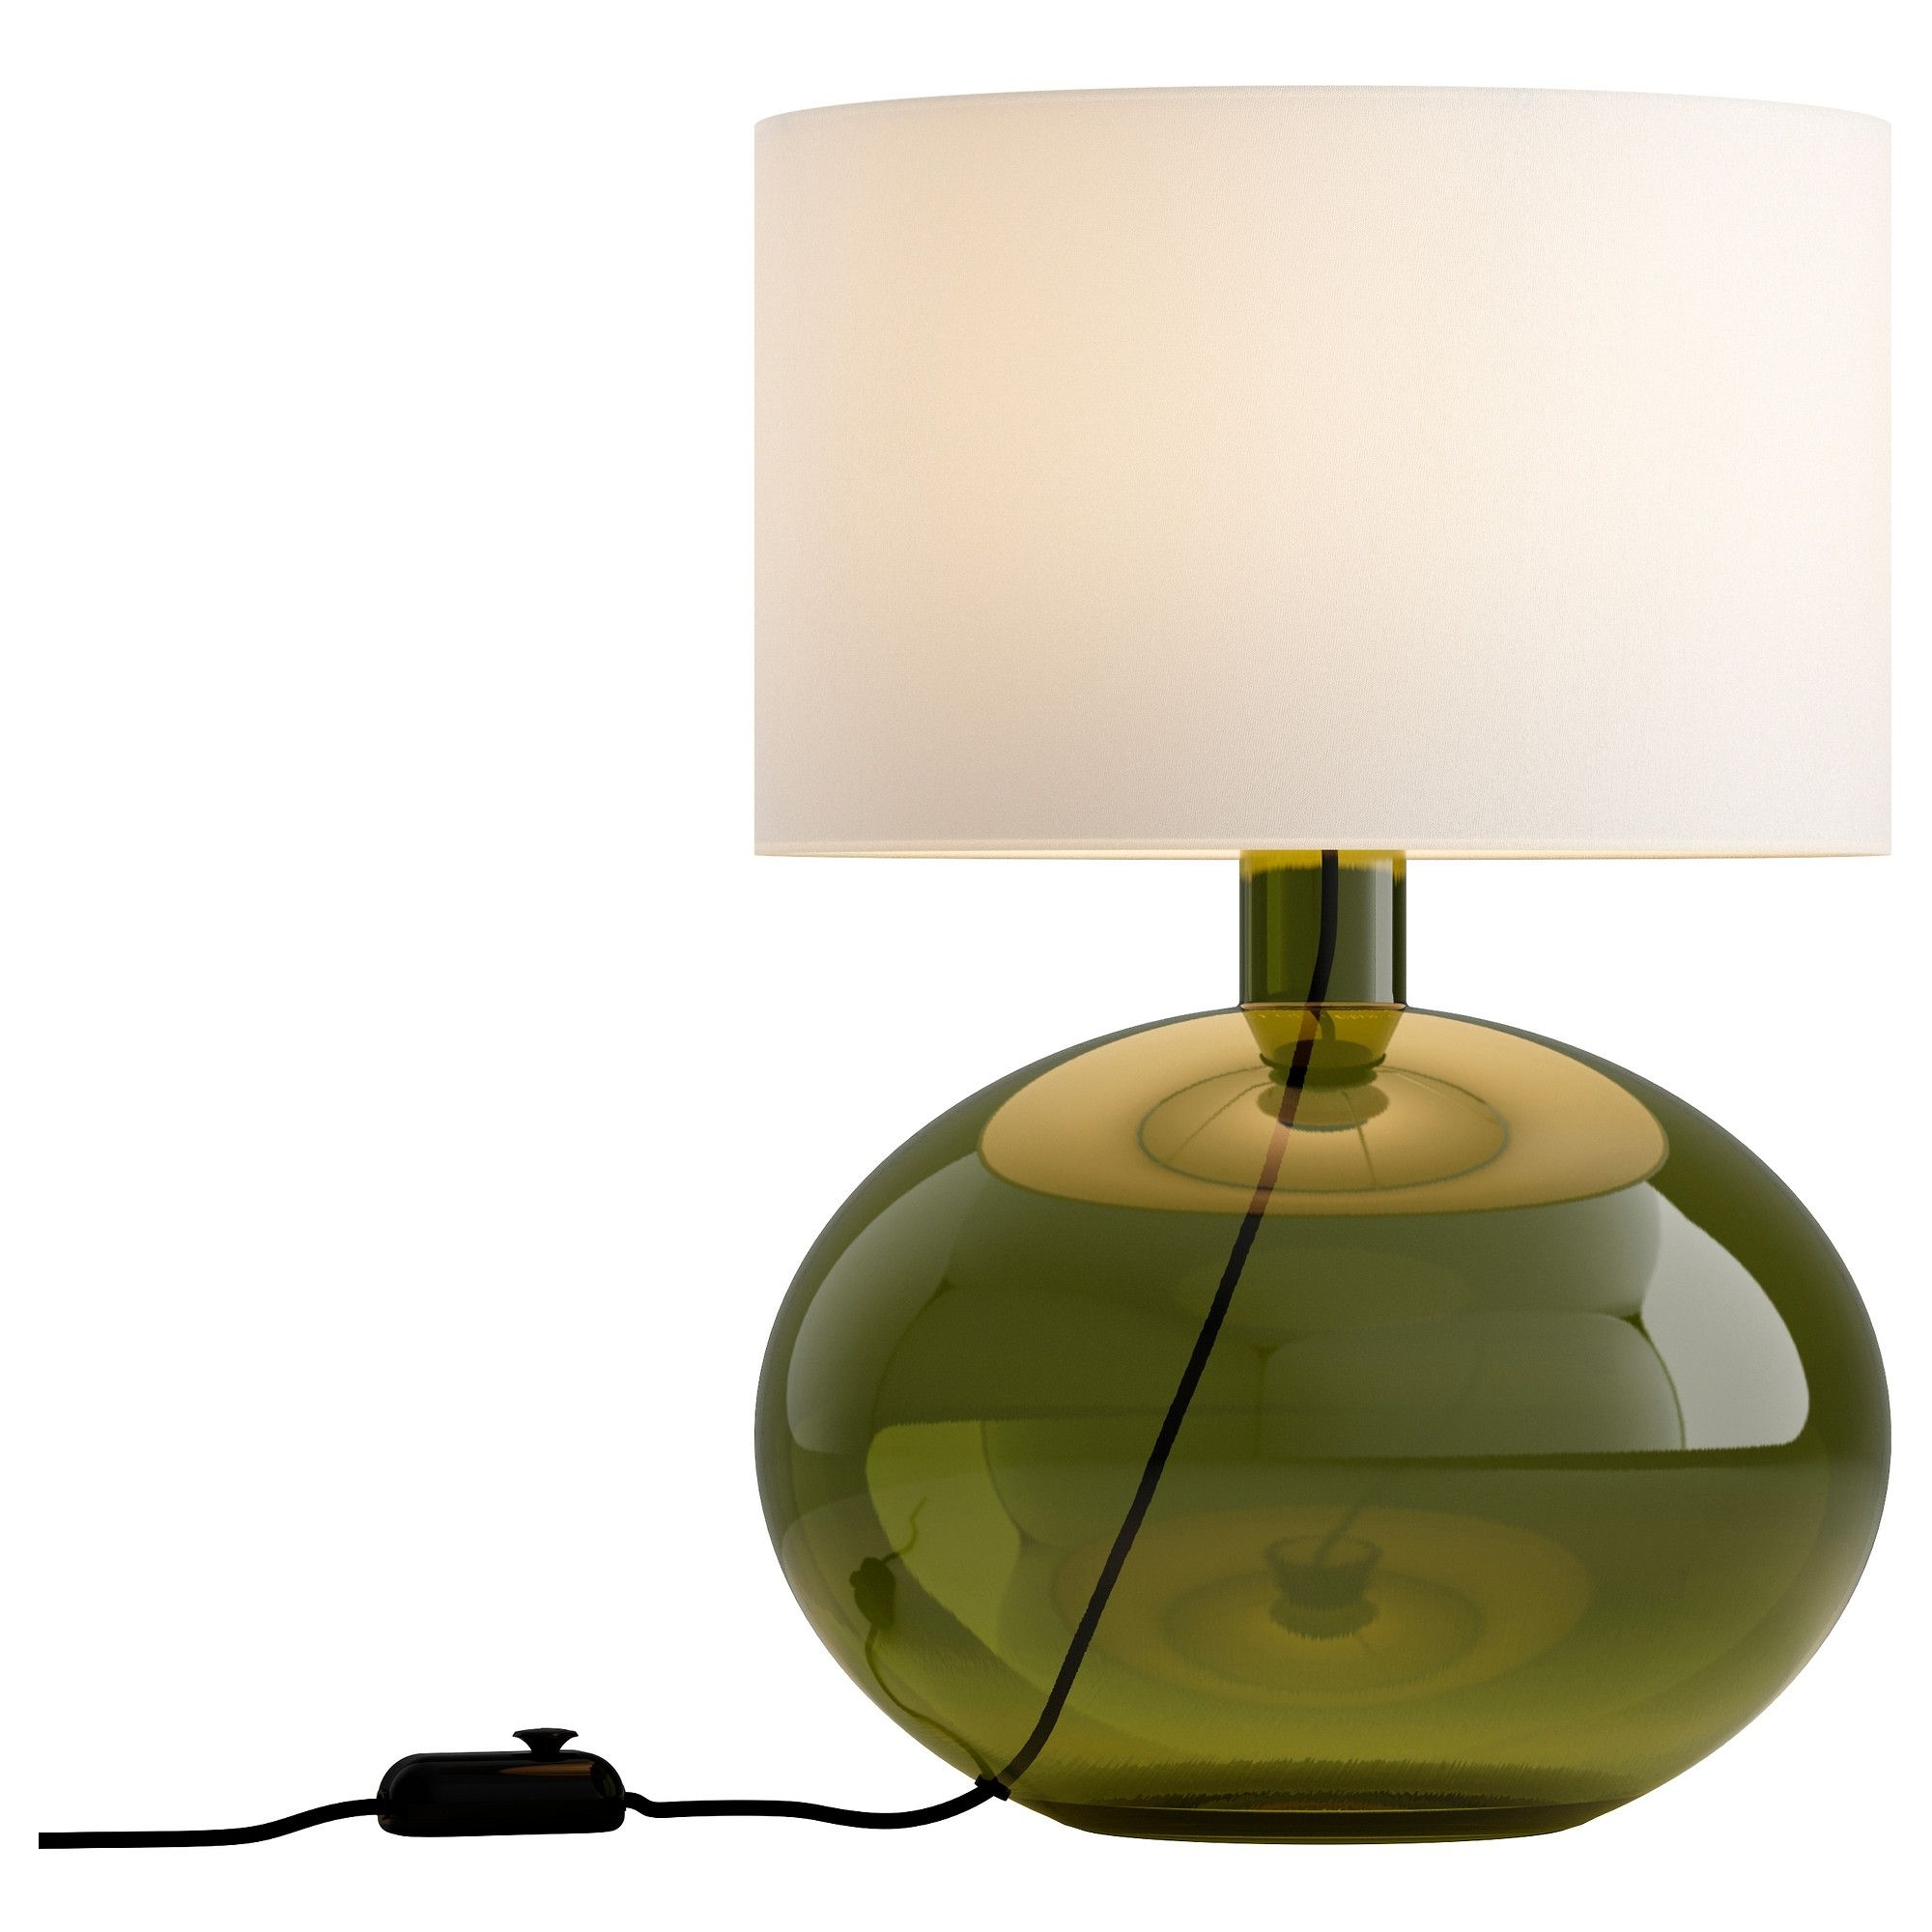 Living Room Table Lamps At Ikea In Well Known Ljusås Ysby Table Lamp – Green – Ikea (View 7 of 20)